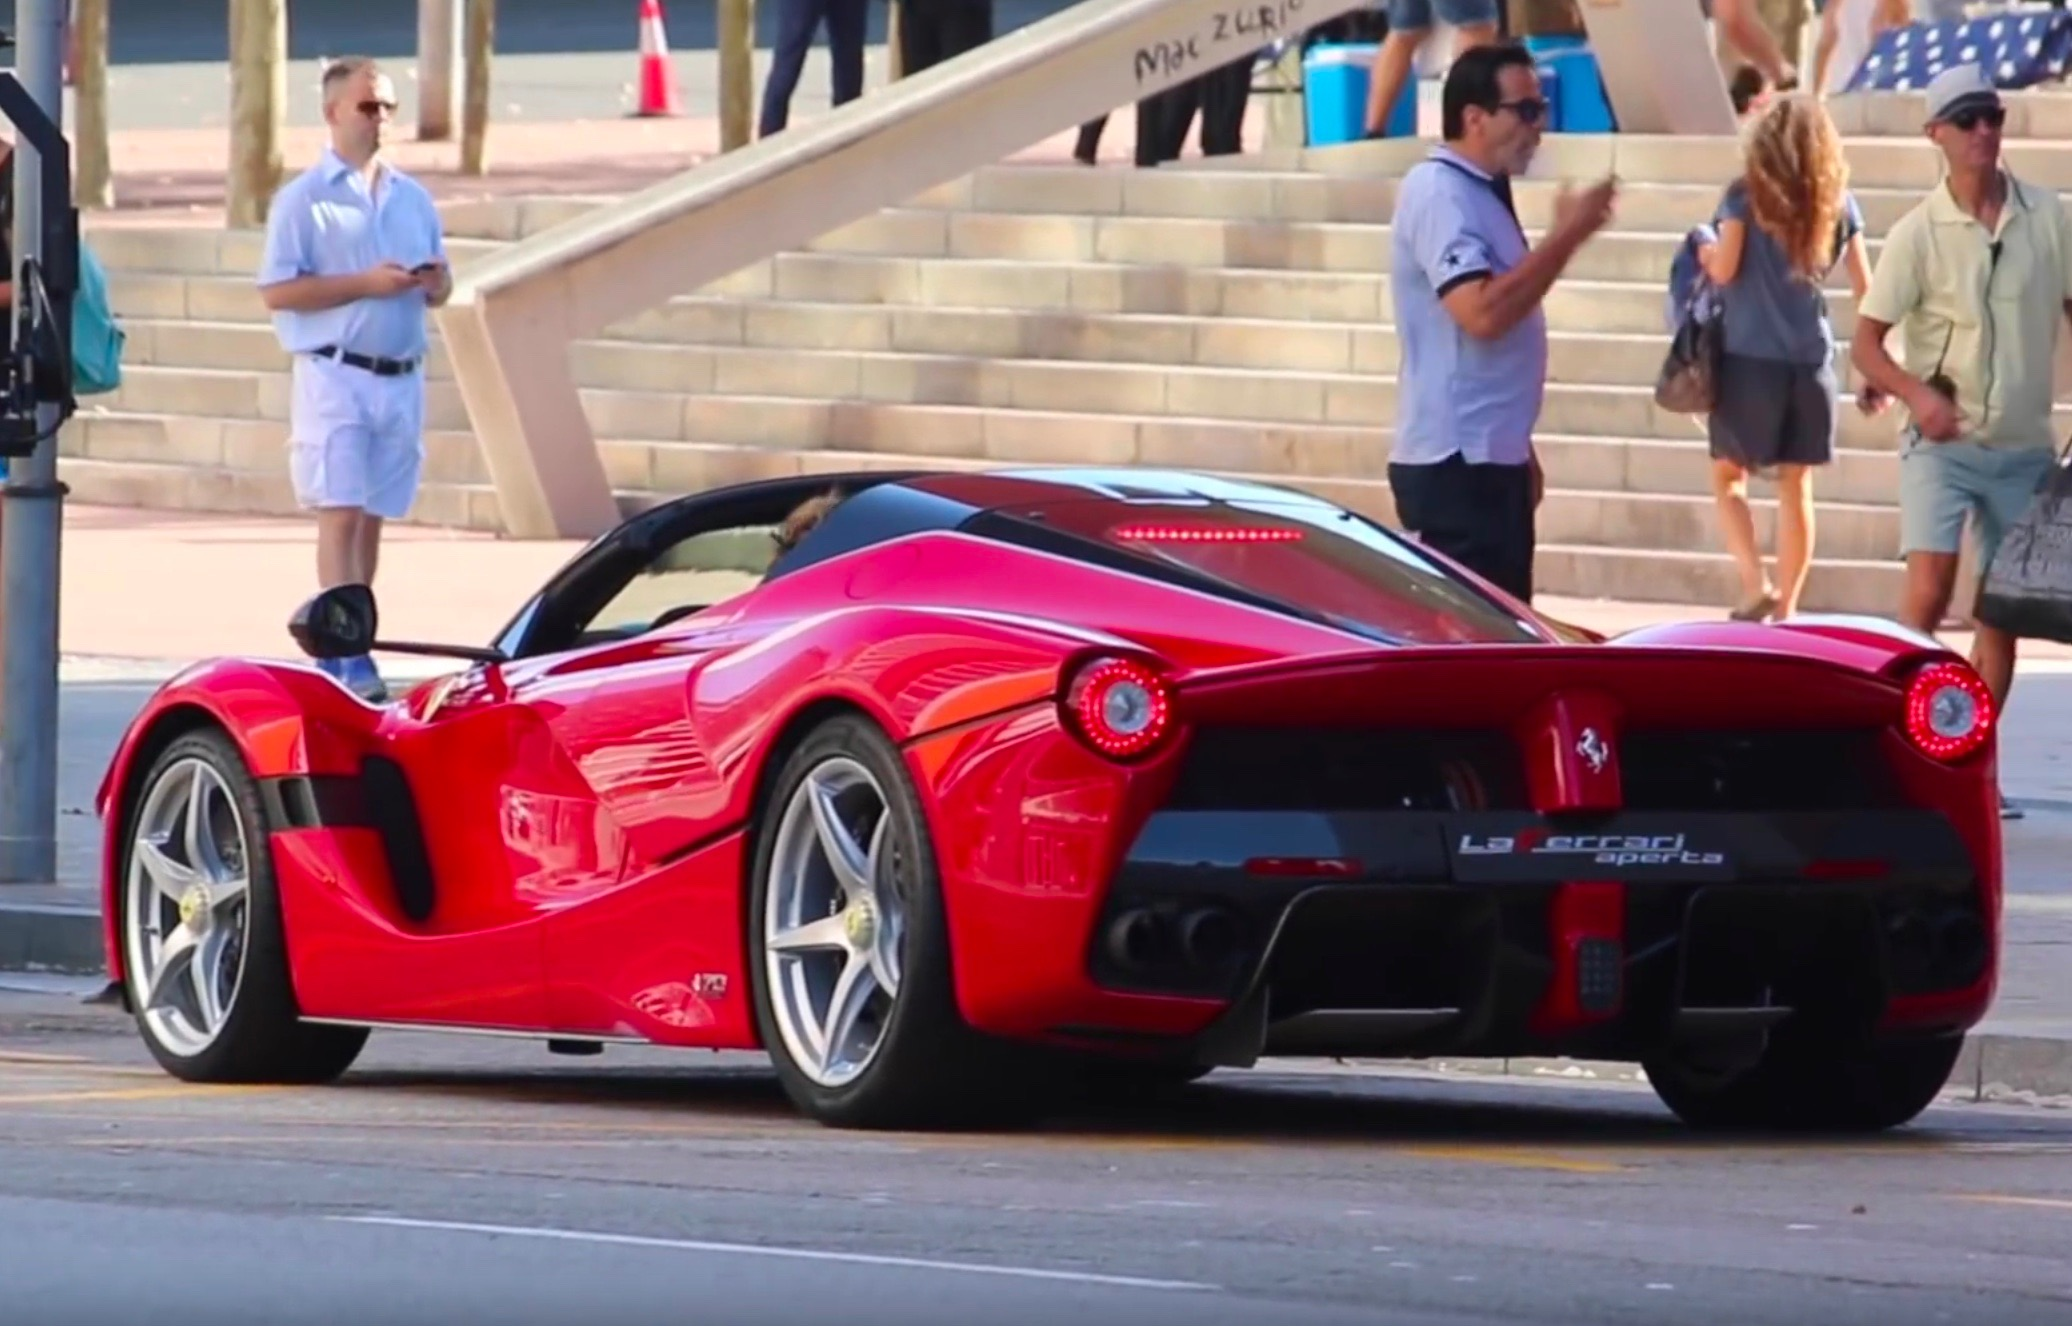 Laferrari Aperta Confirmed As Name For New Convertible